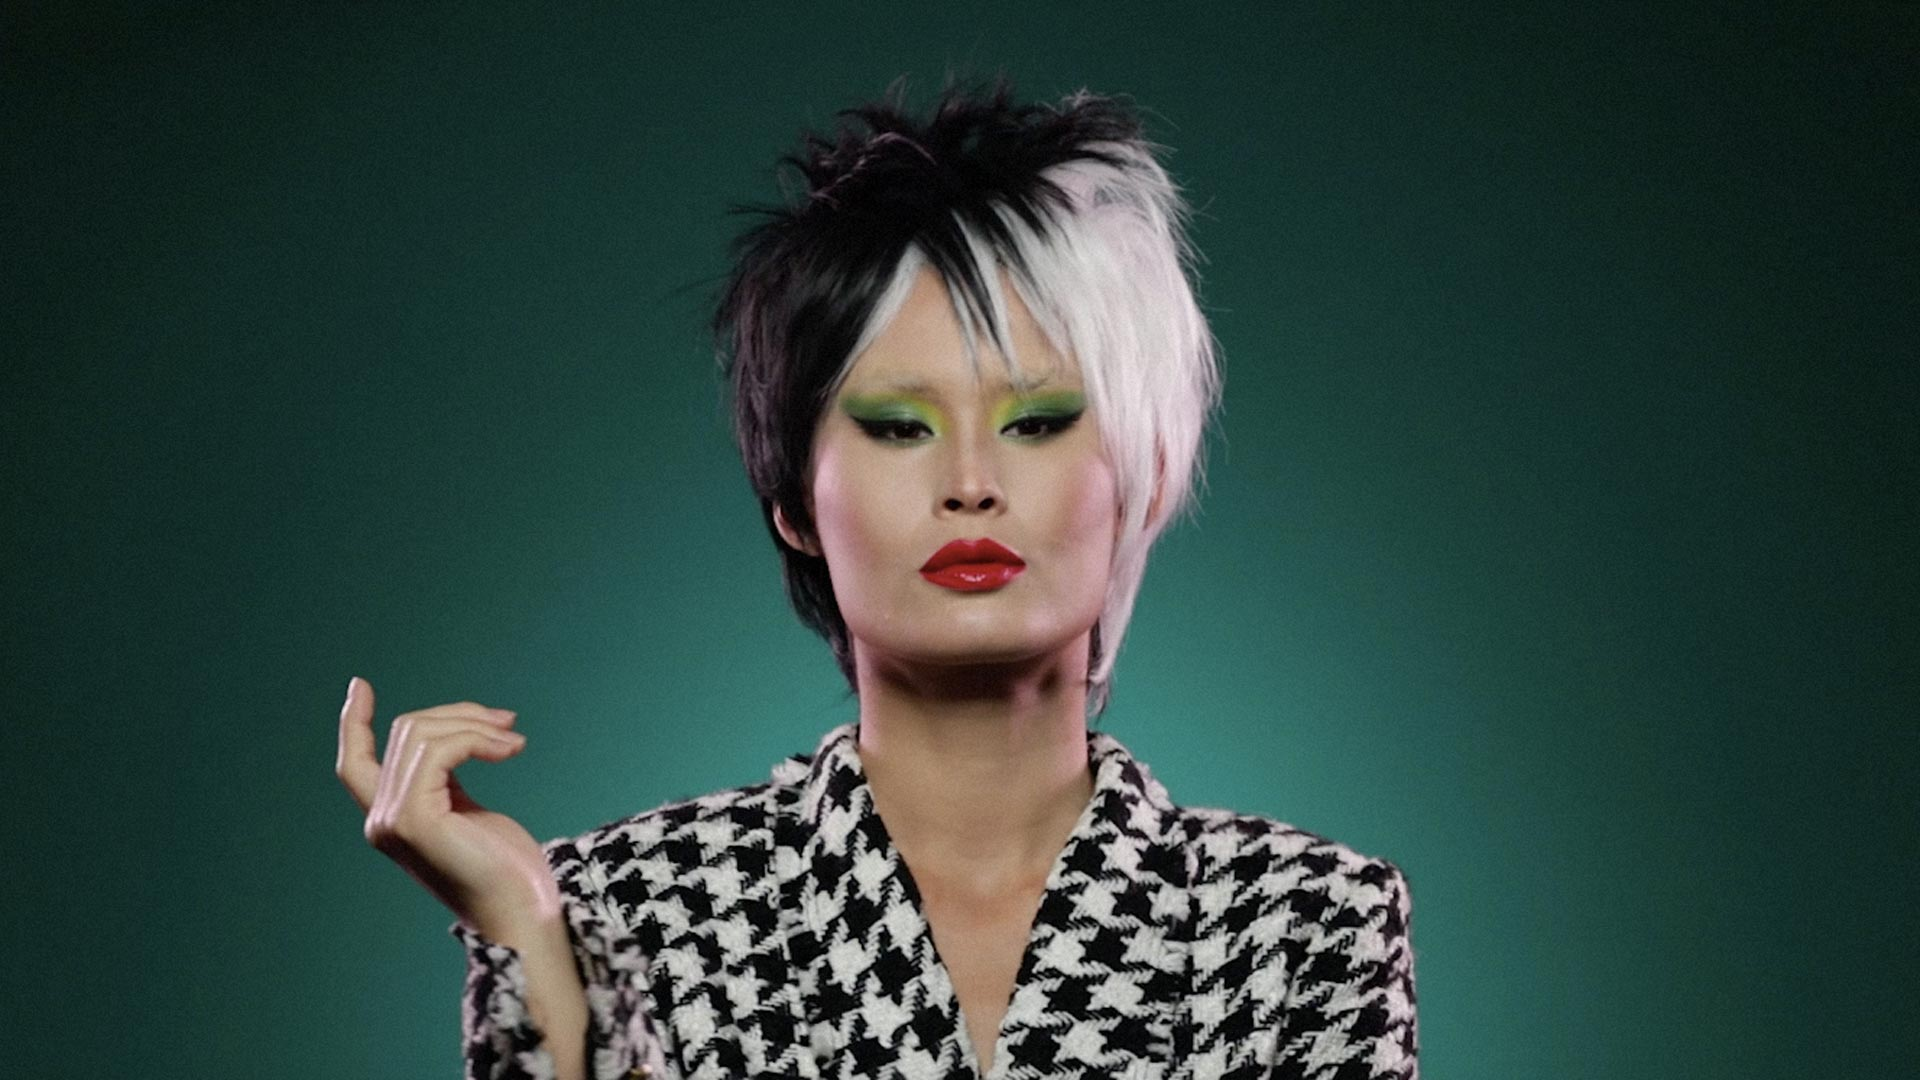 A model made up as Cruella de Vil from 101 Dalmatians